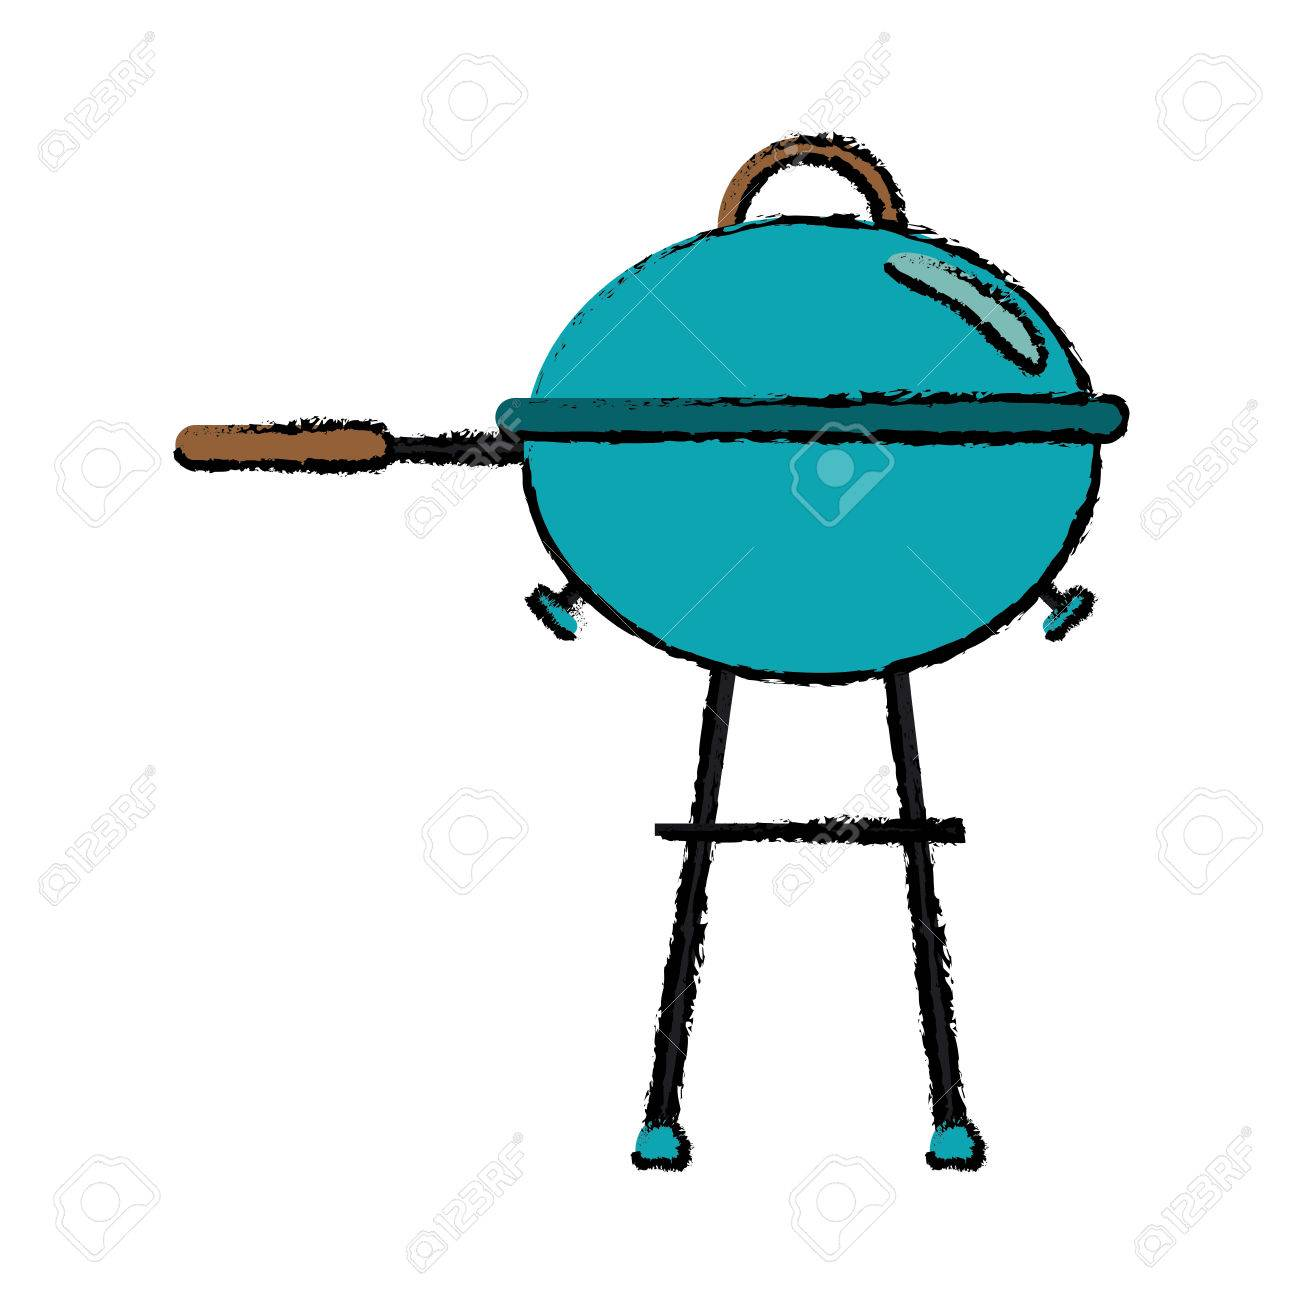 1300x1300 Drawing Grill Barbecue Kettle Food Camping Vector Illustration